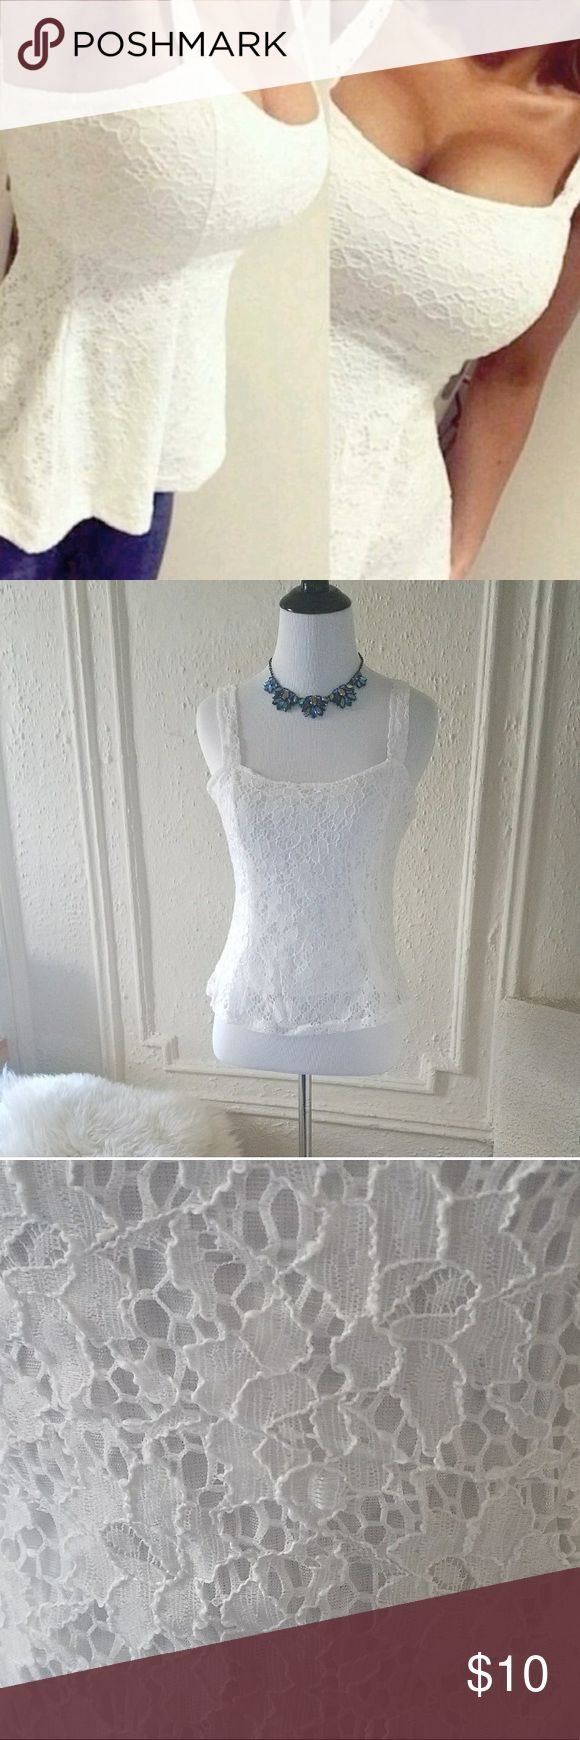 """White Lace Tank Top NWT White Lace Tank Top NWT  Small 15""""L x 30"""" Waist x 33"""" Bust  All measurements are applet approximate. Tops Tank Tops"""